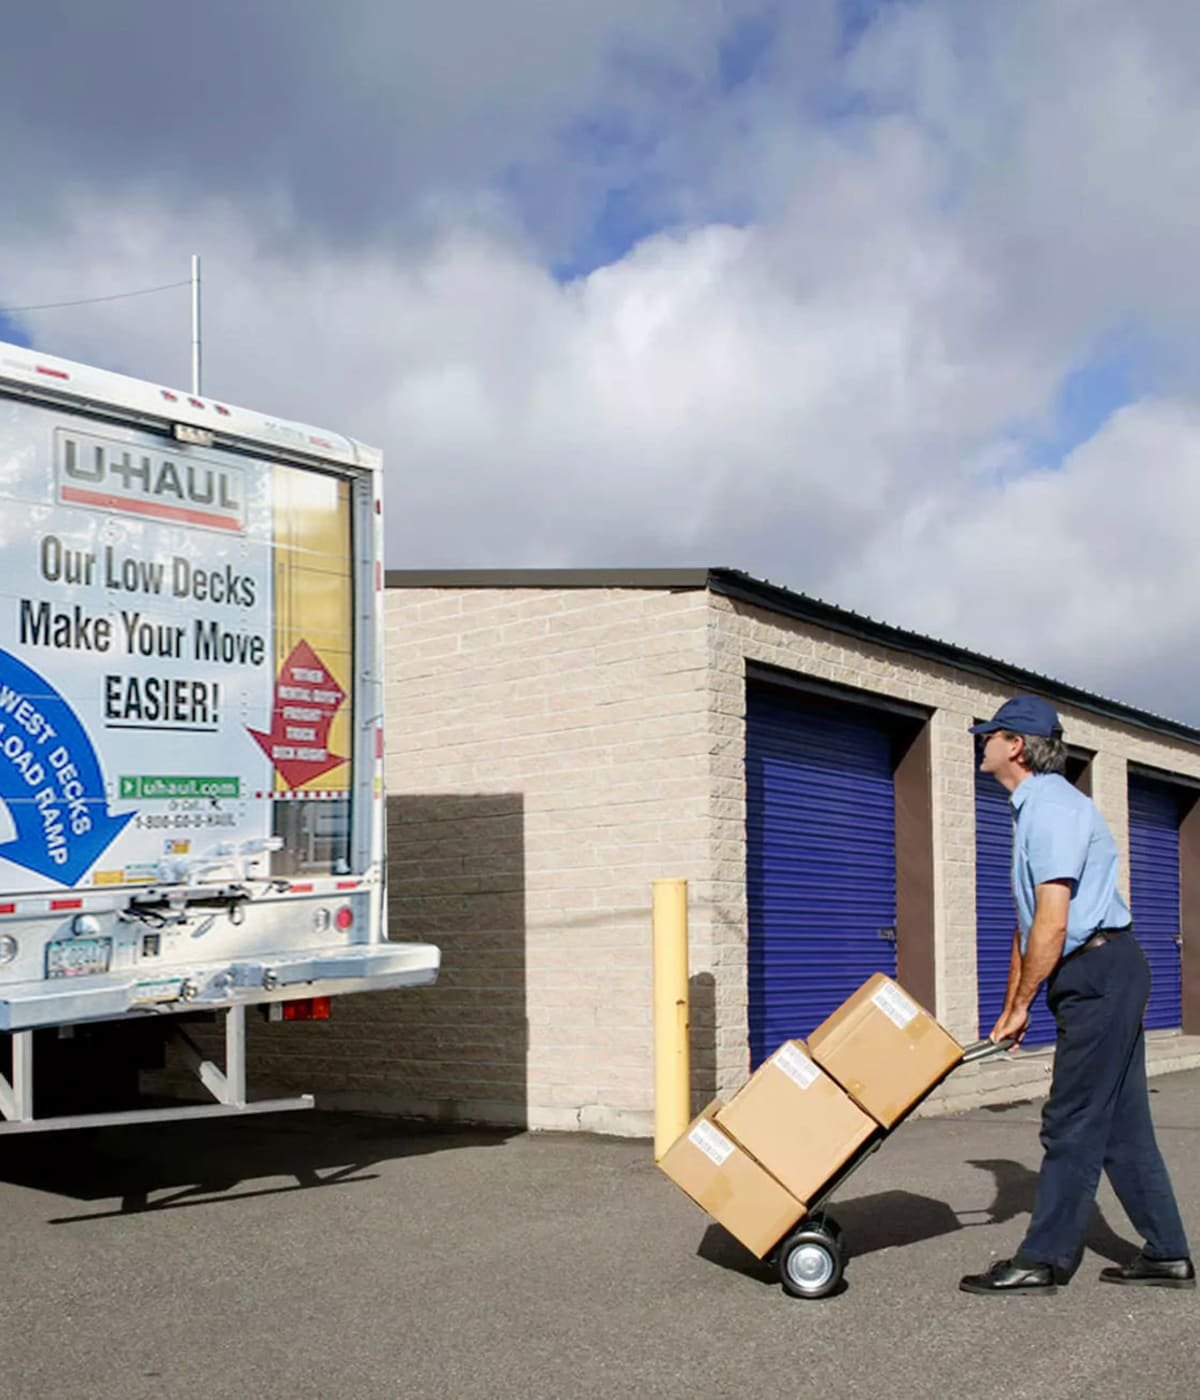 Midgard Self Storage in Melbourne, Florida, has moving trucks for rent